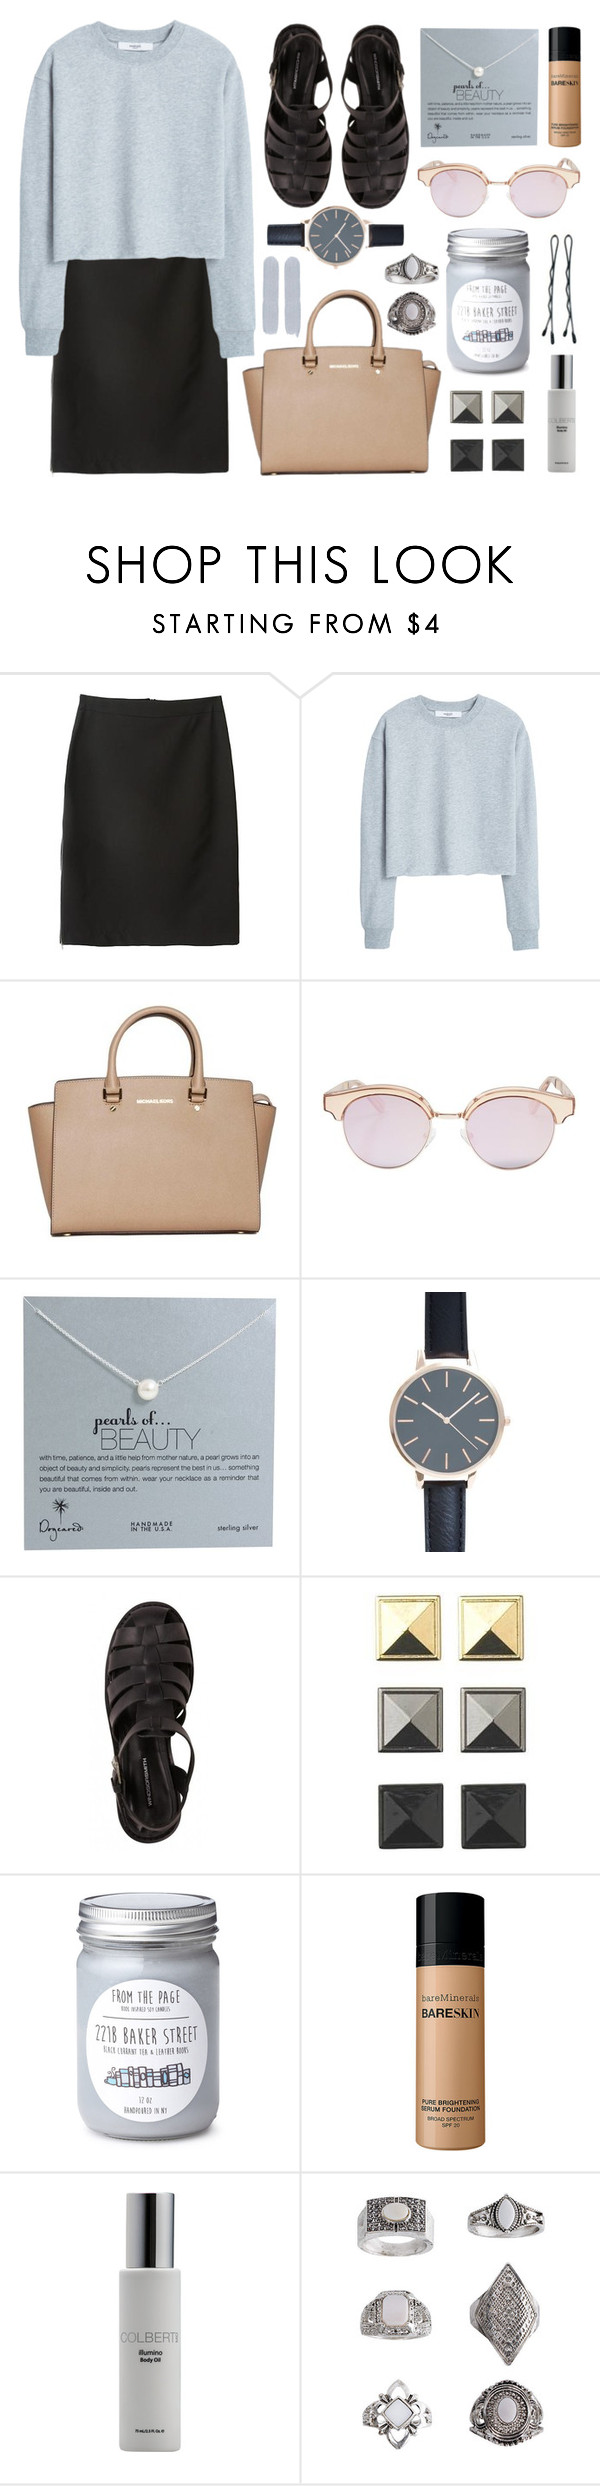 """""""Untitled #628"""" by rheeee ❤ liked on Polyvore featuring MANGO, MICHAEL Michael Kors, Le Specs, Dogeared Jewels, Bare Escentuals, Colbert MD and Topshop"""